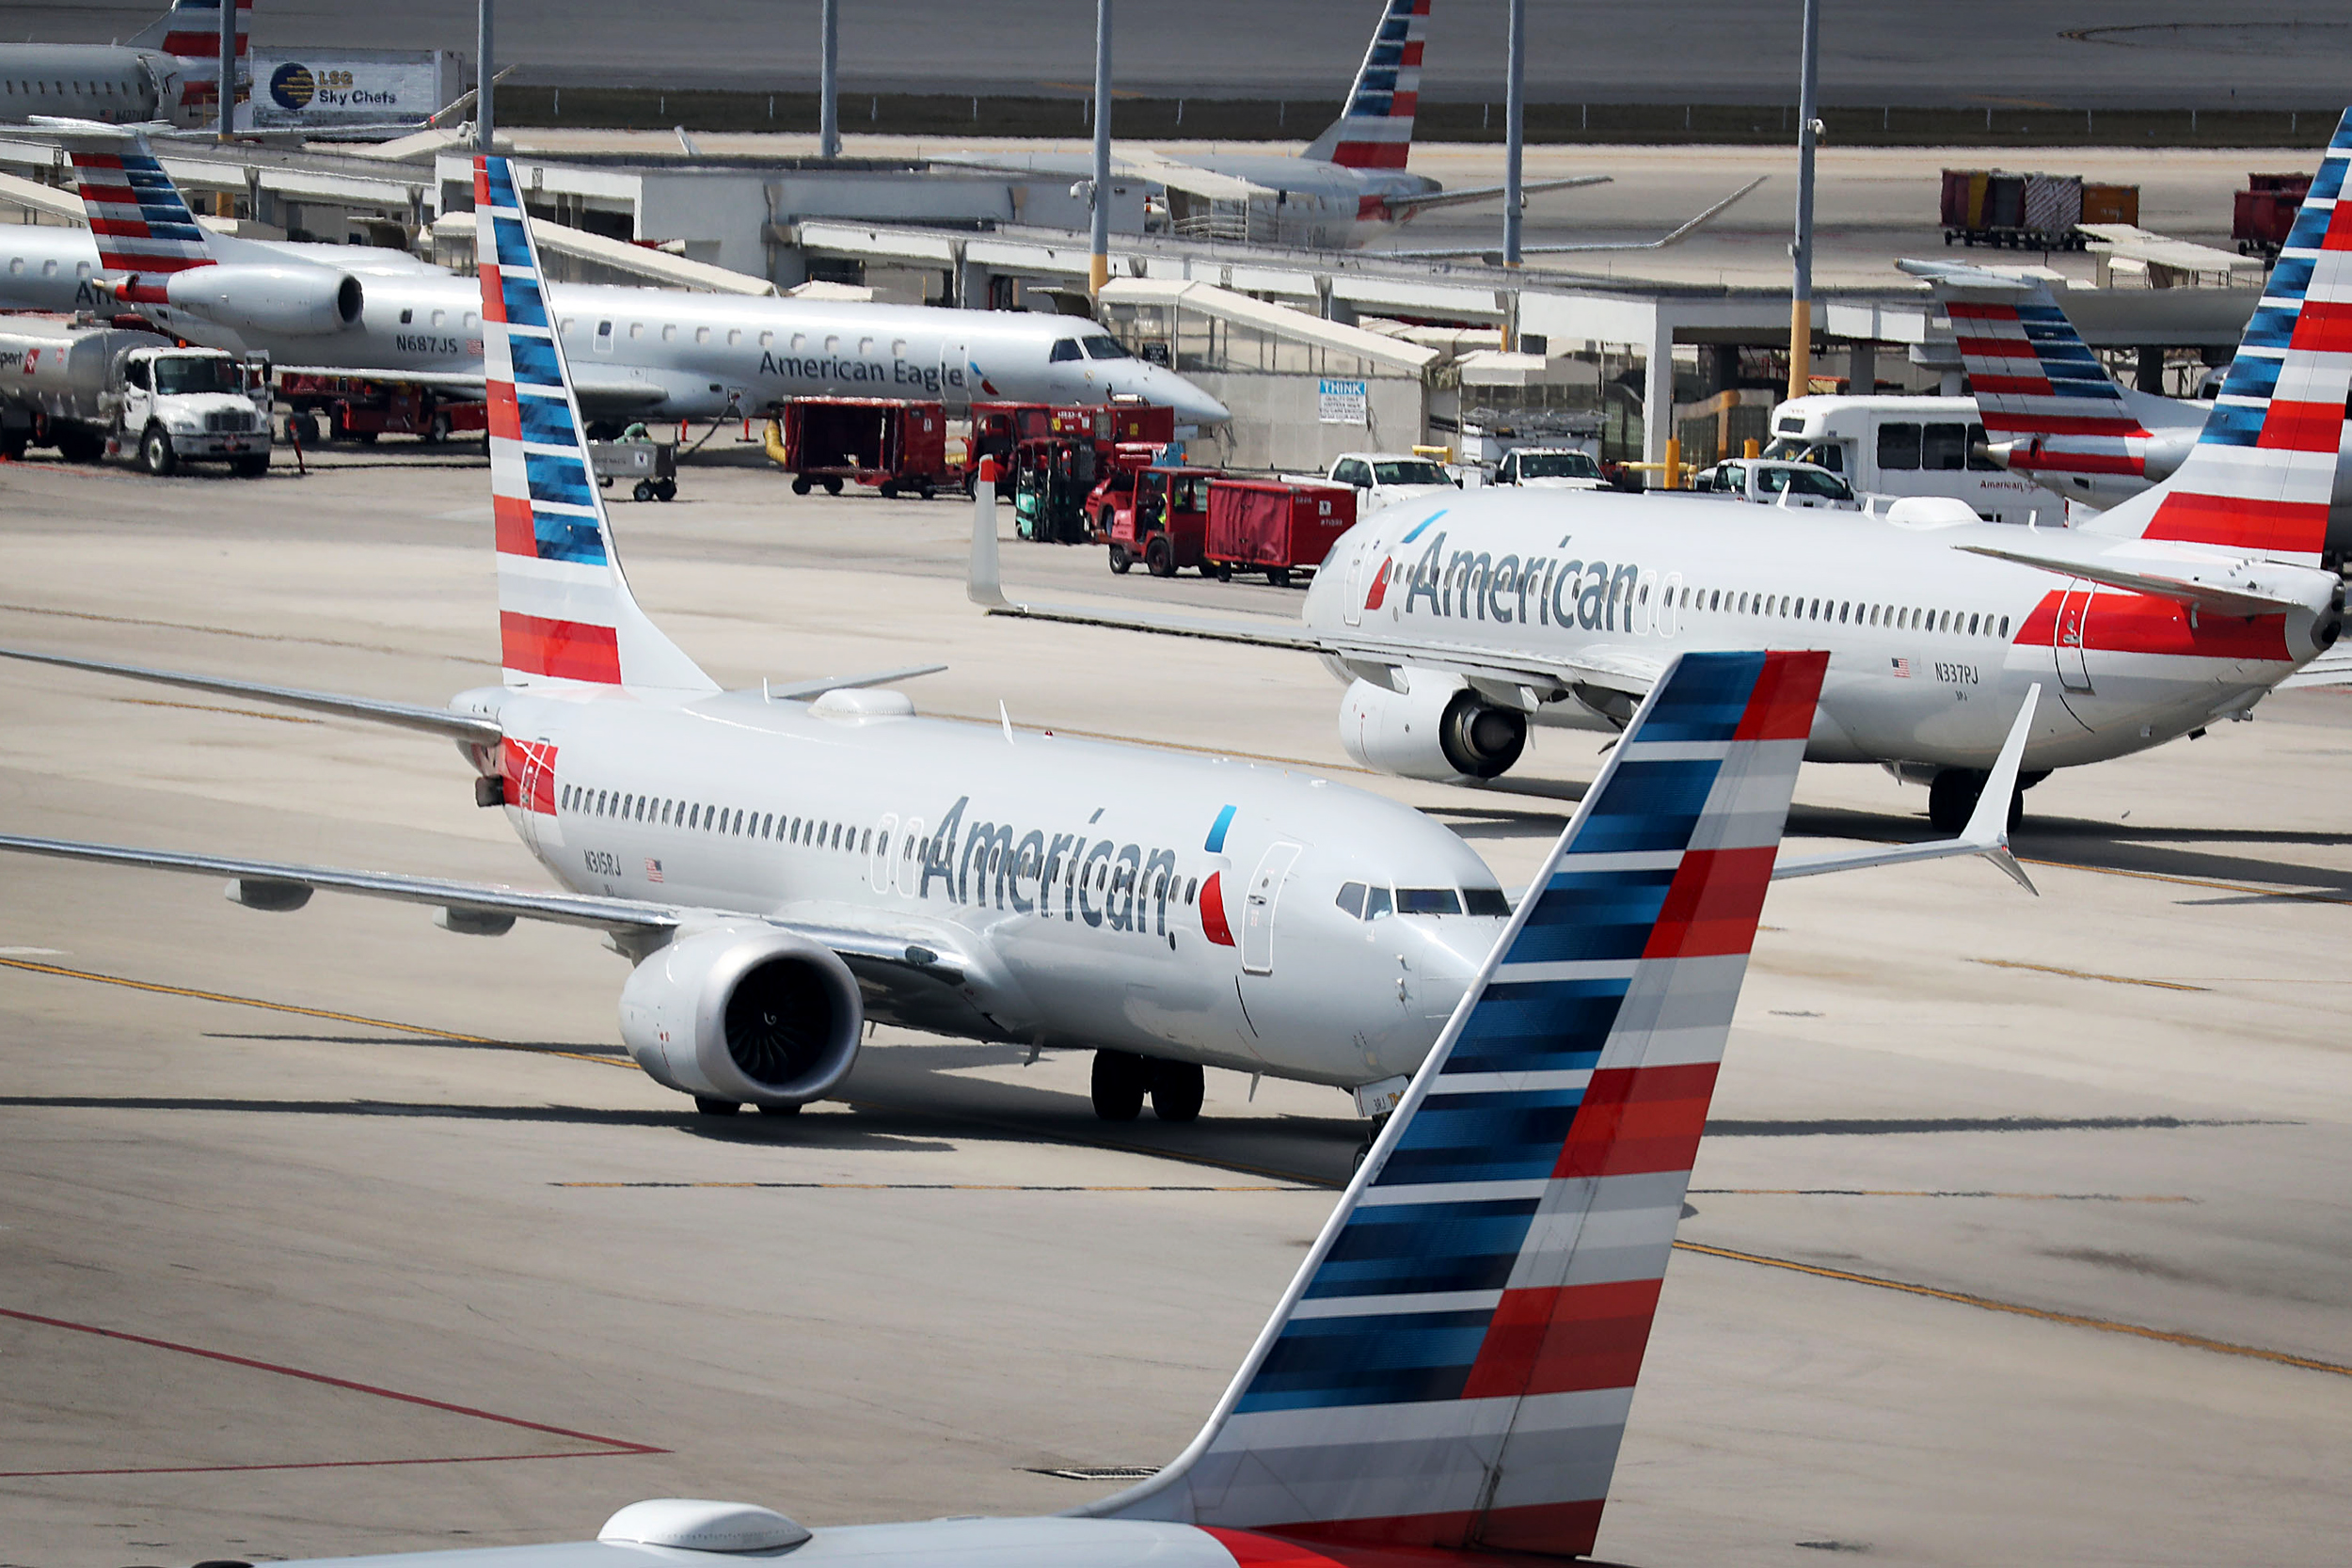 Passenger jumps onto wing of plane in Miami